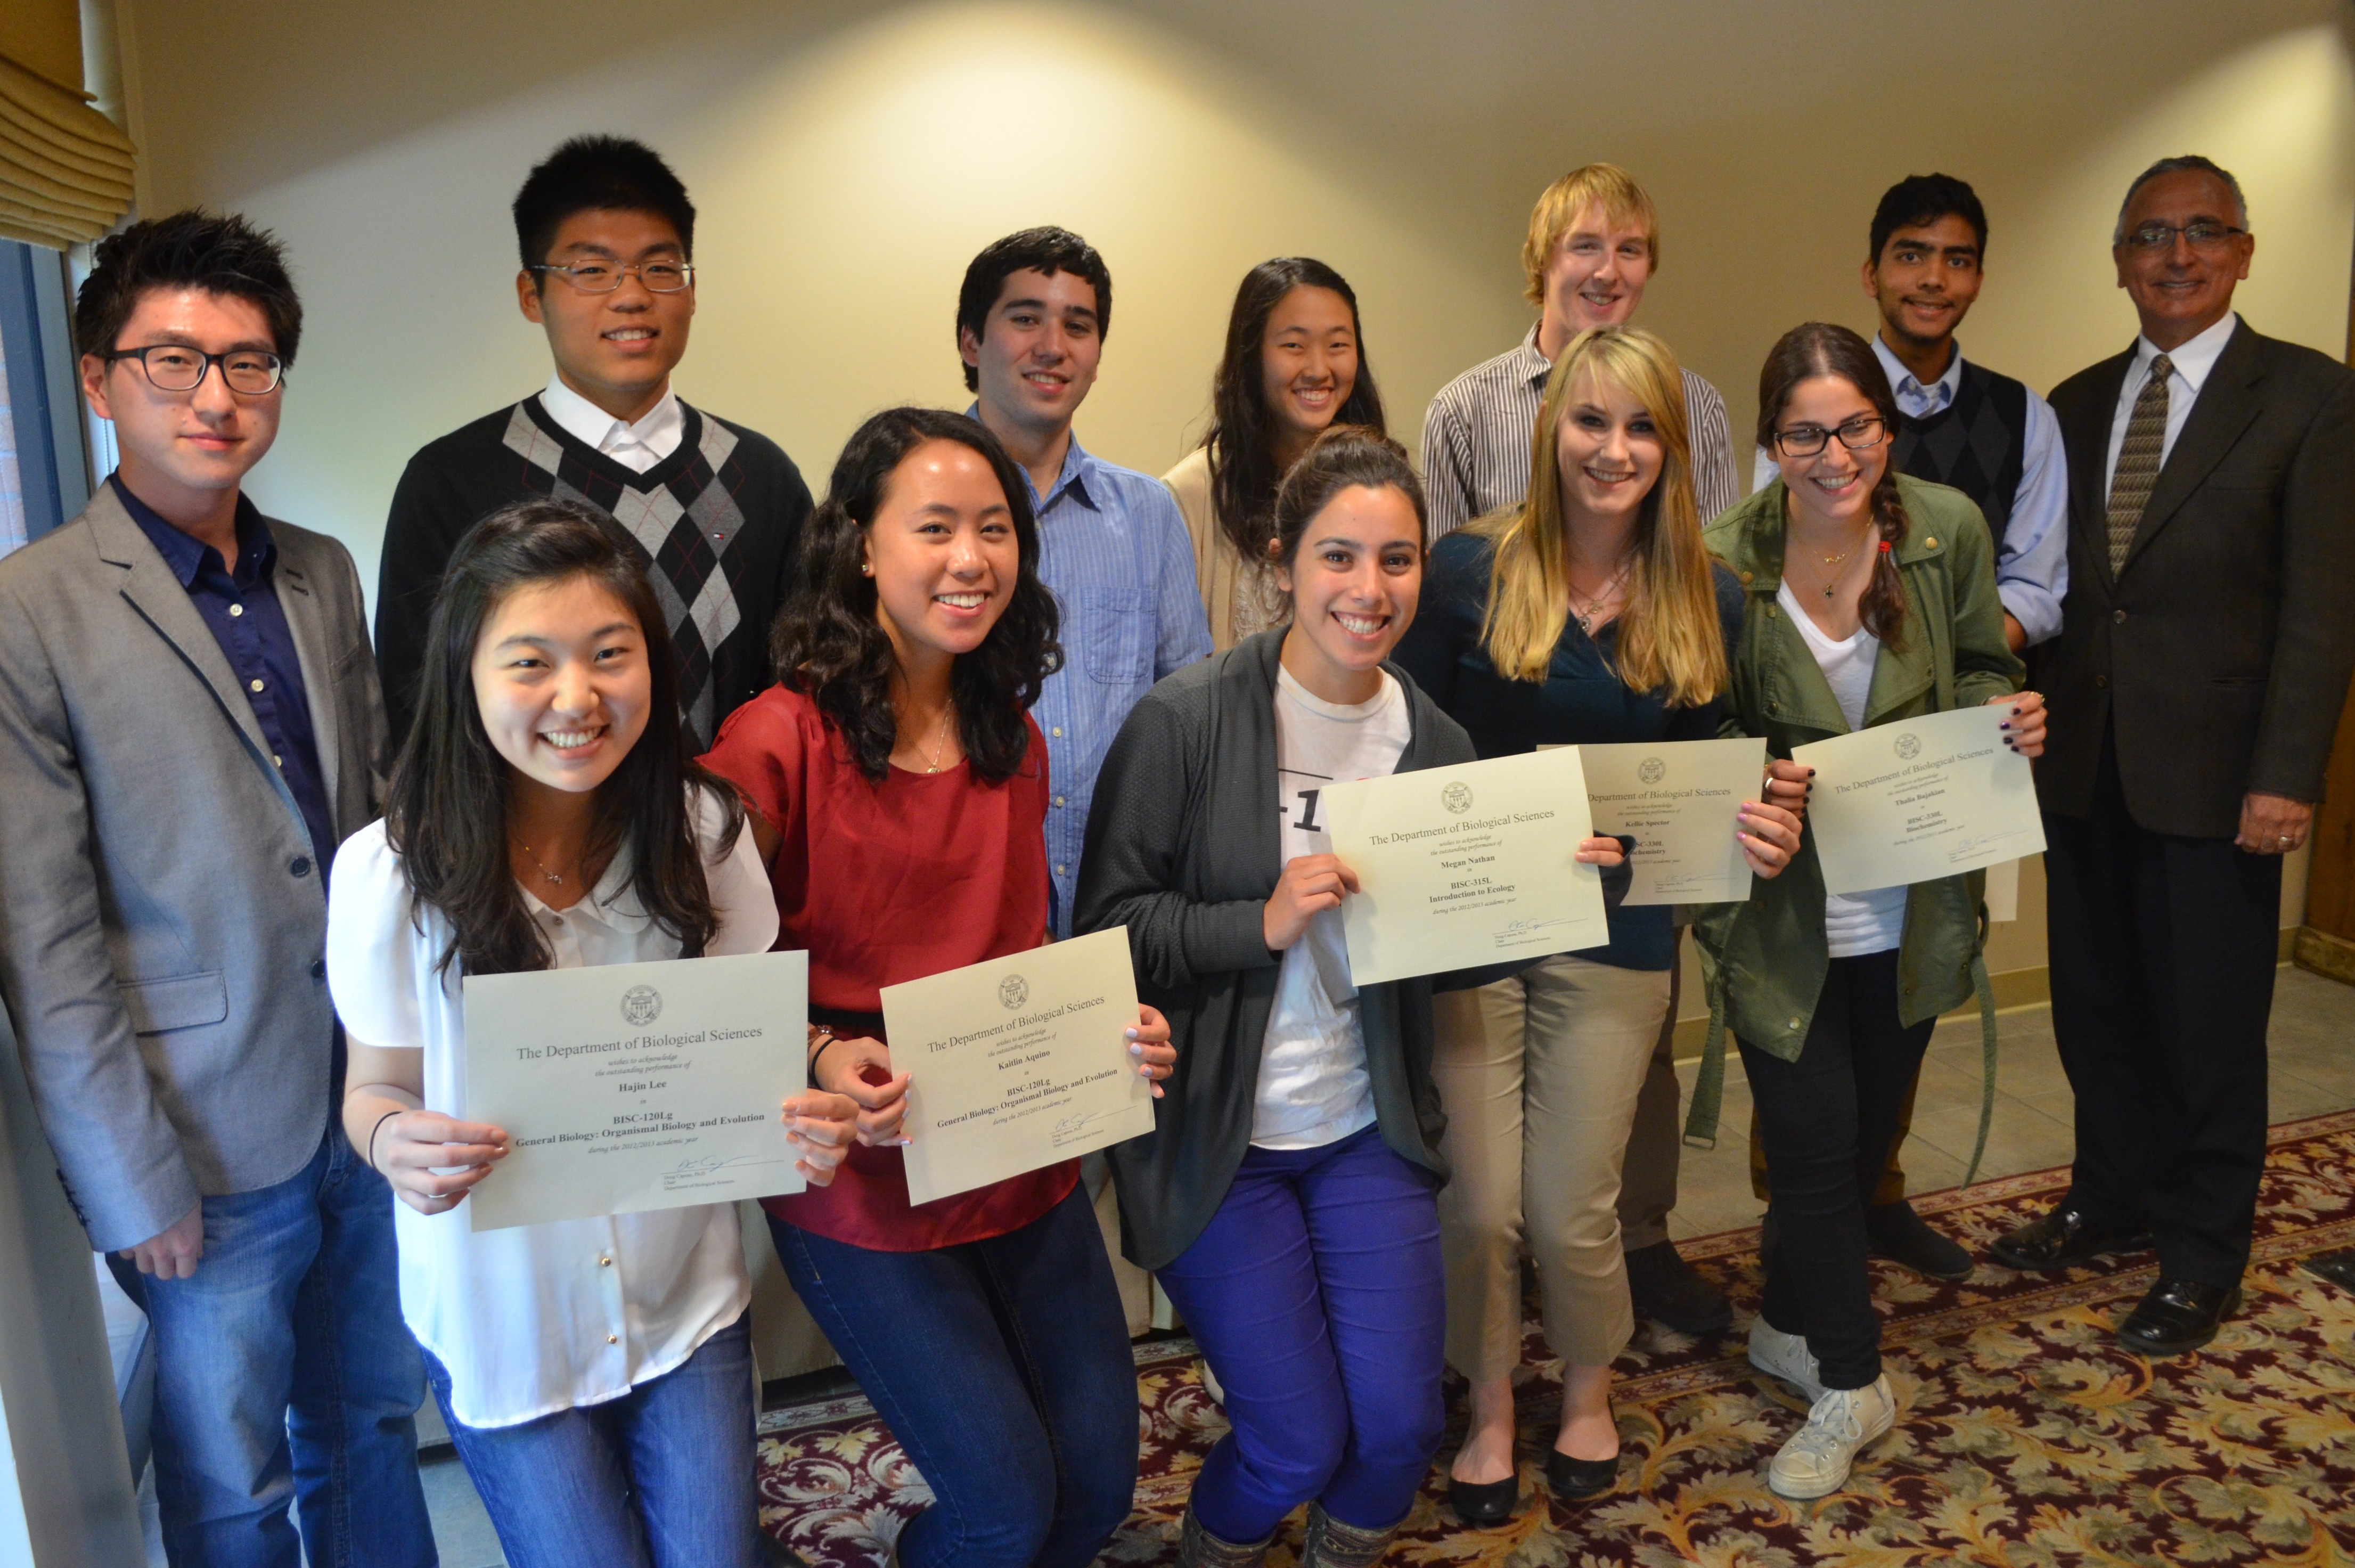 Students recognized as outstanding undergraduates in biological sciences honors core courses display their awards with Professor Albert Herrera of USC Dornsife. (Photo/Erica Christianson)